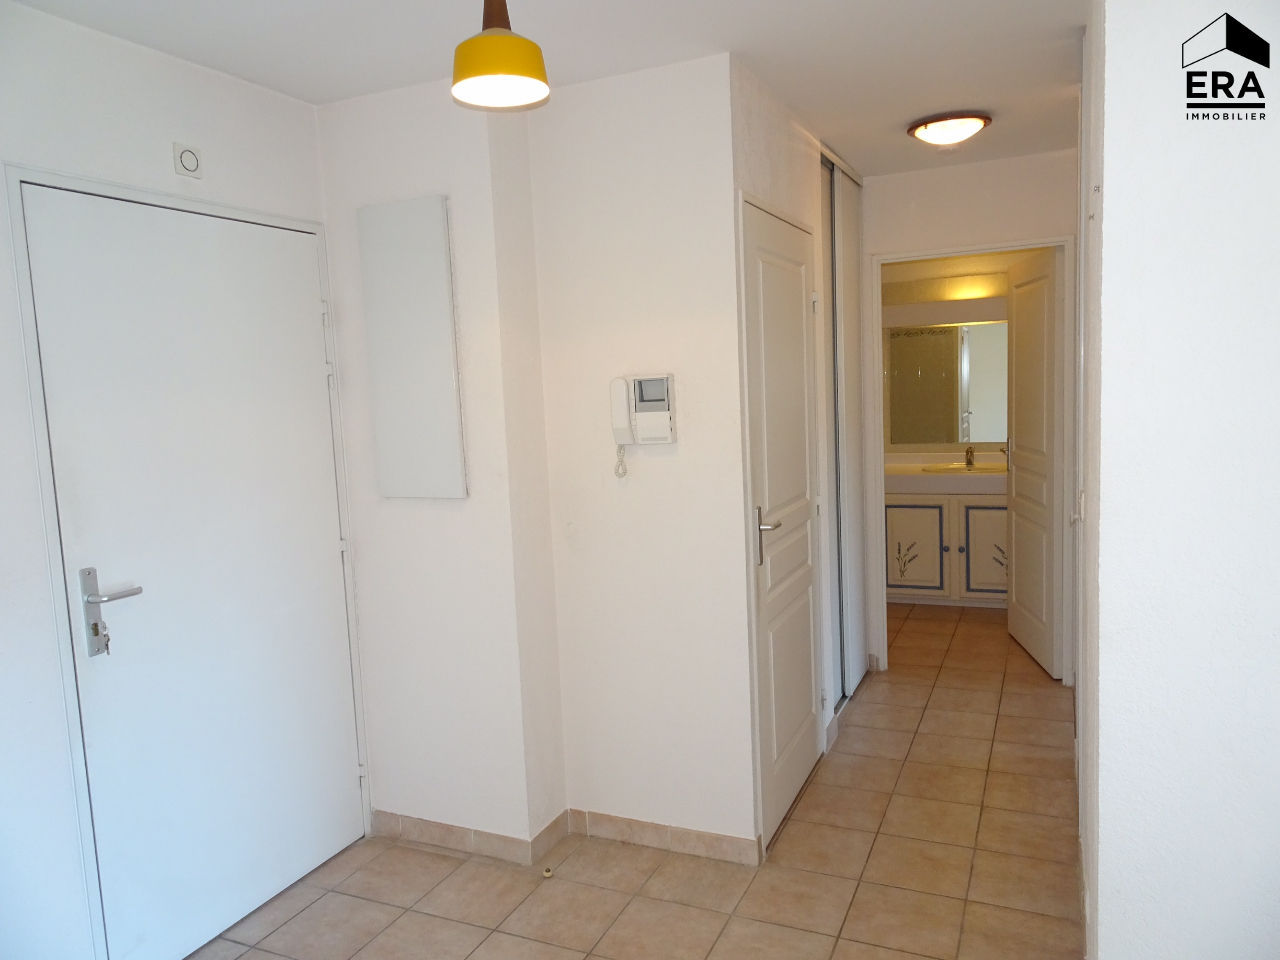 BOUC BEL AIR, appartement type 3, terrasse, garage et place de parking